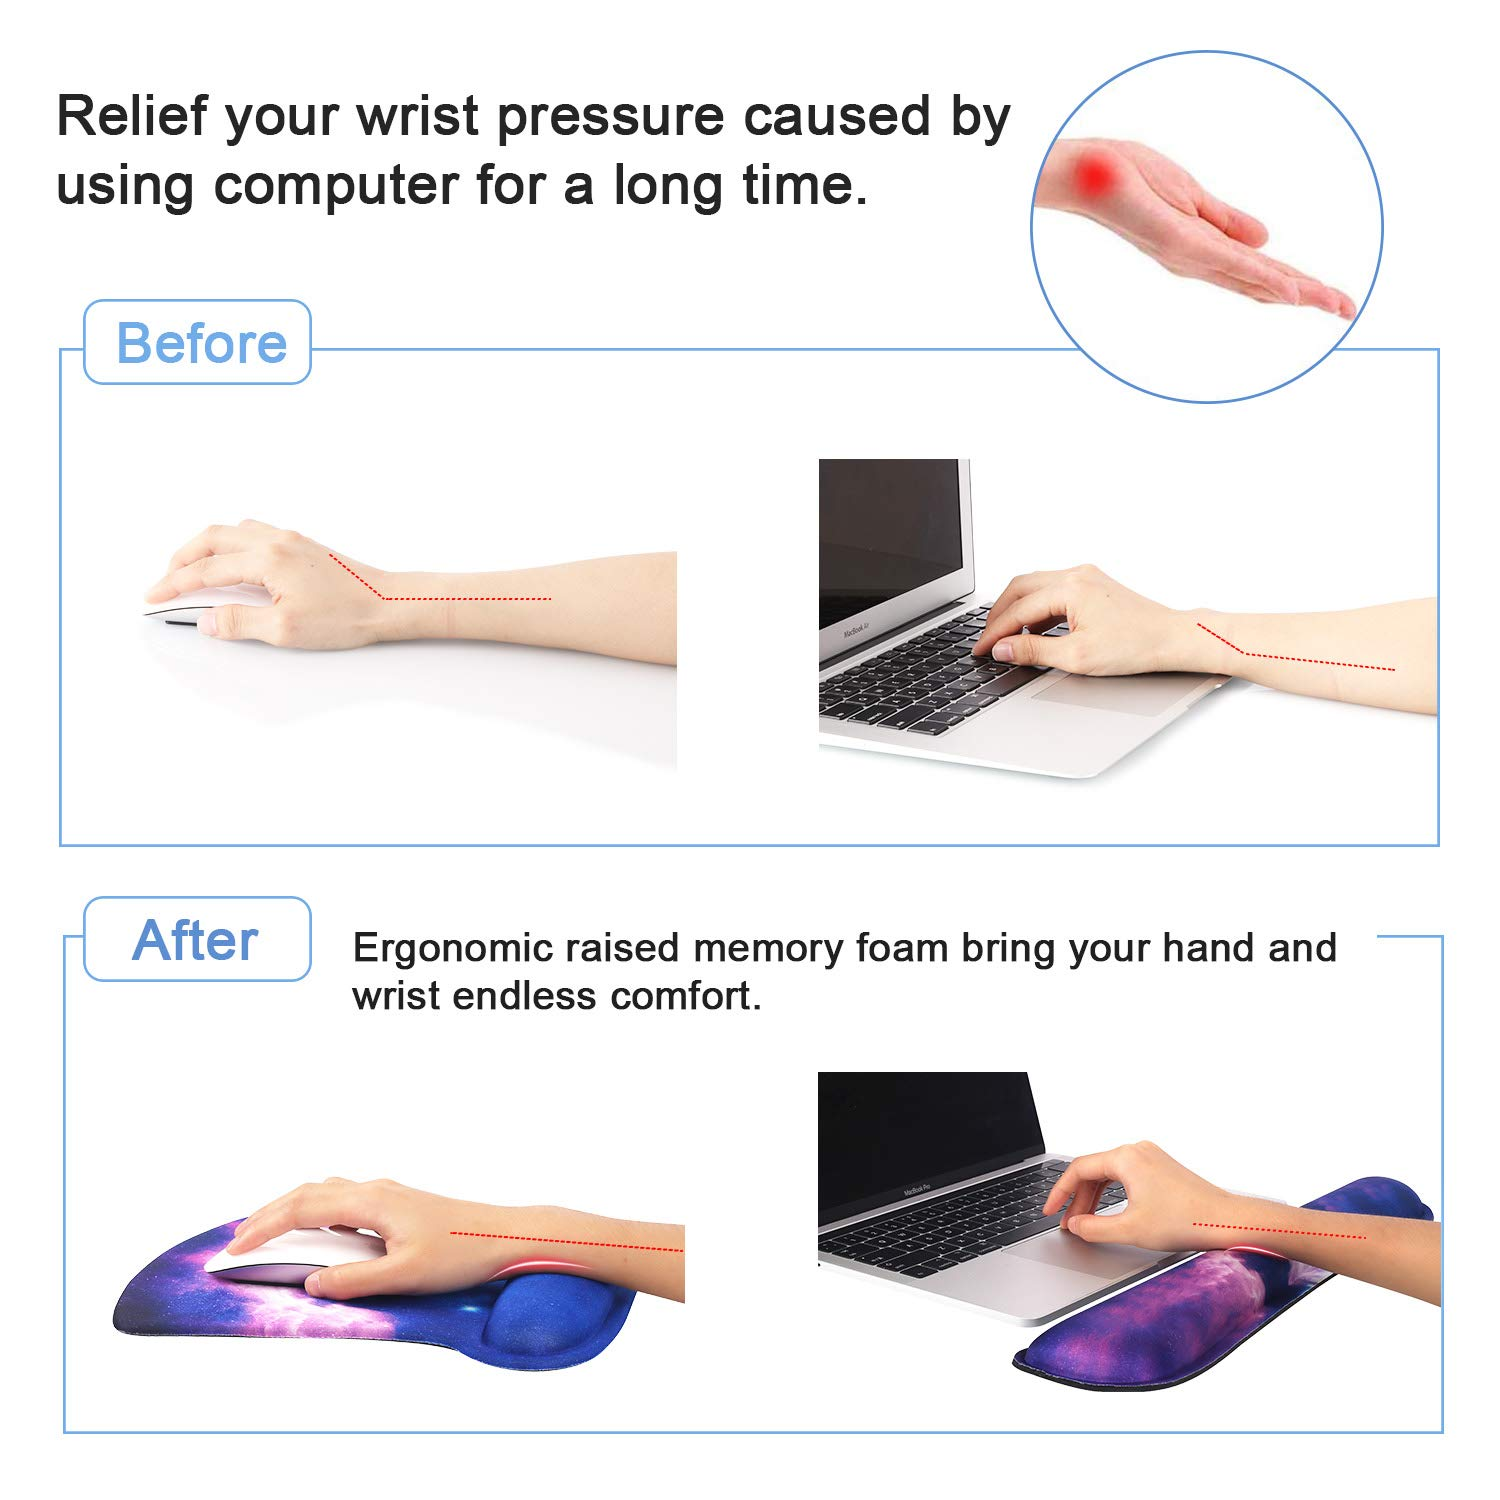 Durable /& Comfortable /& Lightweight For Easy Typing /& Pain Relief-Ergonomic Support,Eiffel Tower iCasso Keyboard Wrist Rest Pad and Mouse Wrist Rest Support Mouse Pad Set